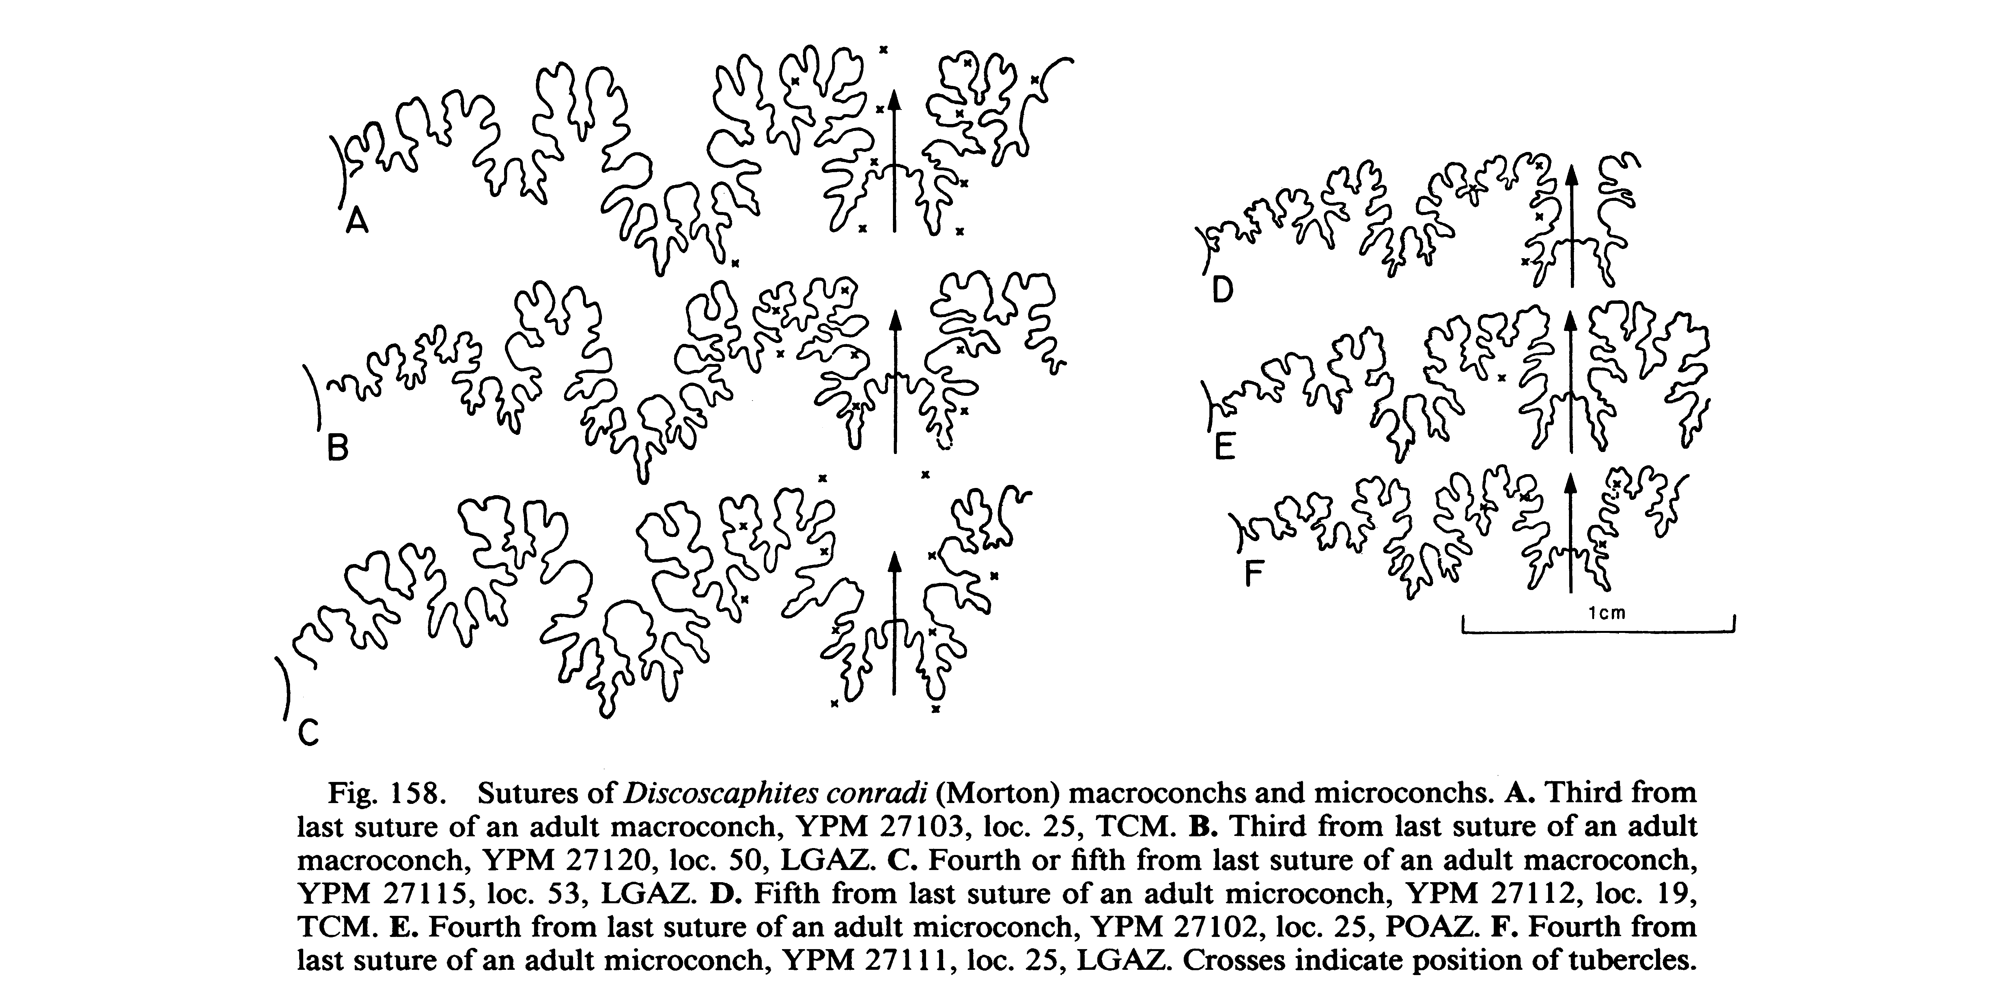 Sutures of <i>Discoscaphites conradi</i>. See original caption for additional details. Image modified from figs. 158 in Landman and Waage (1993 in <i>Bulletin of the American Museum of Natural History</i>, no. 215) and used with permission.